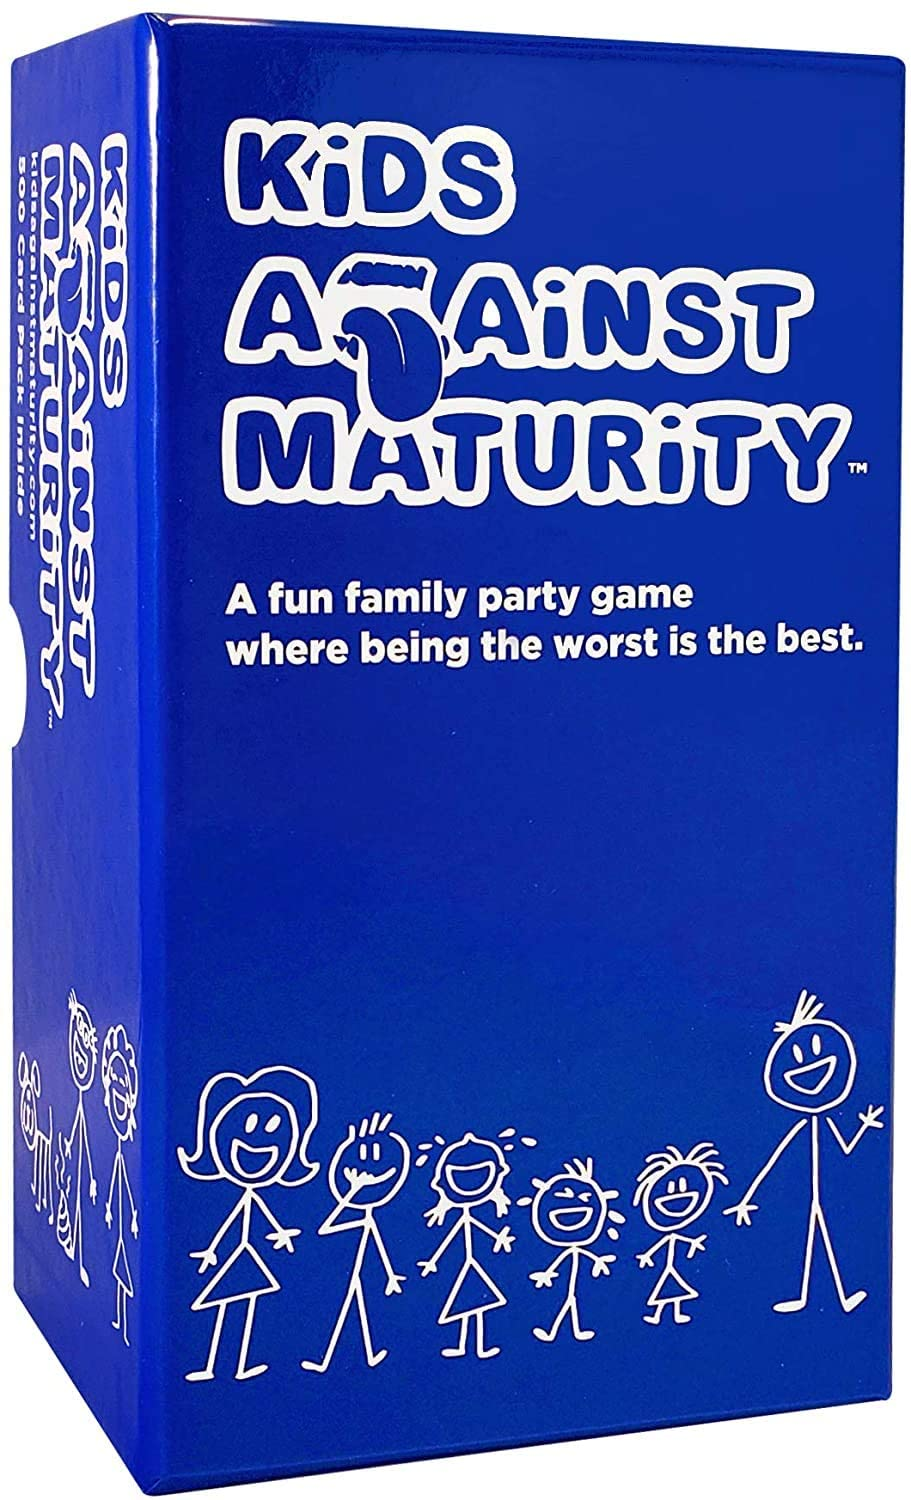 Kids Against Maturity Valentine's Day Gifts for Kids